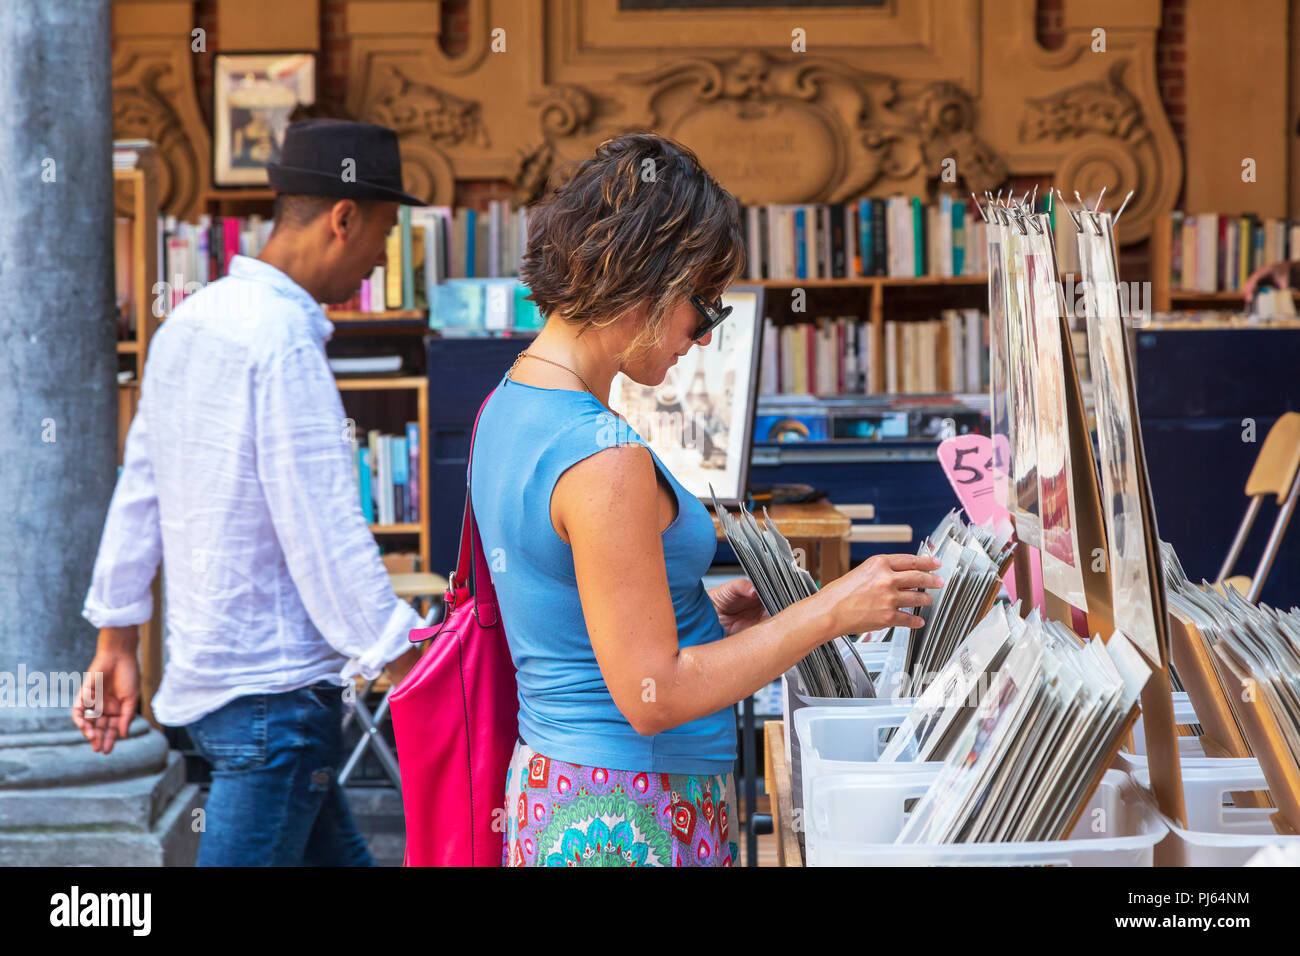 Woman shopping in the old book and antiques market, held in Vielle Bourse de Lille, Place du General de Gaulle, Lille, France - Stock Image